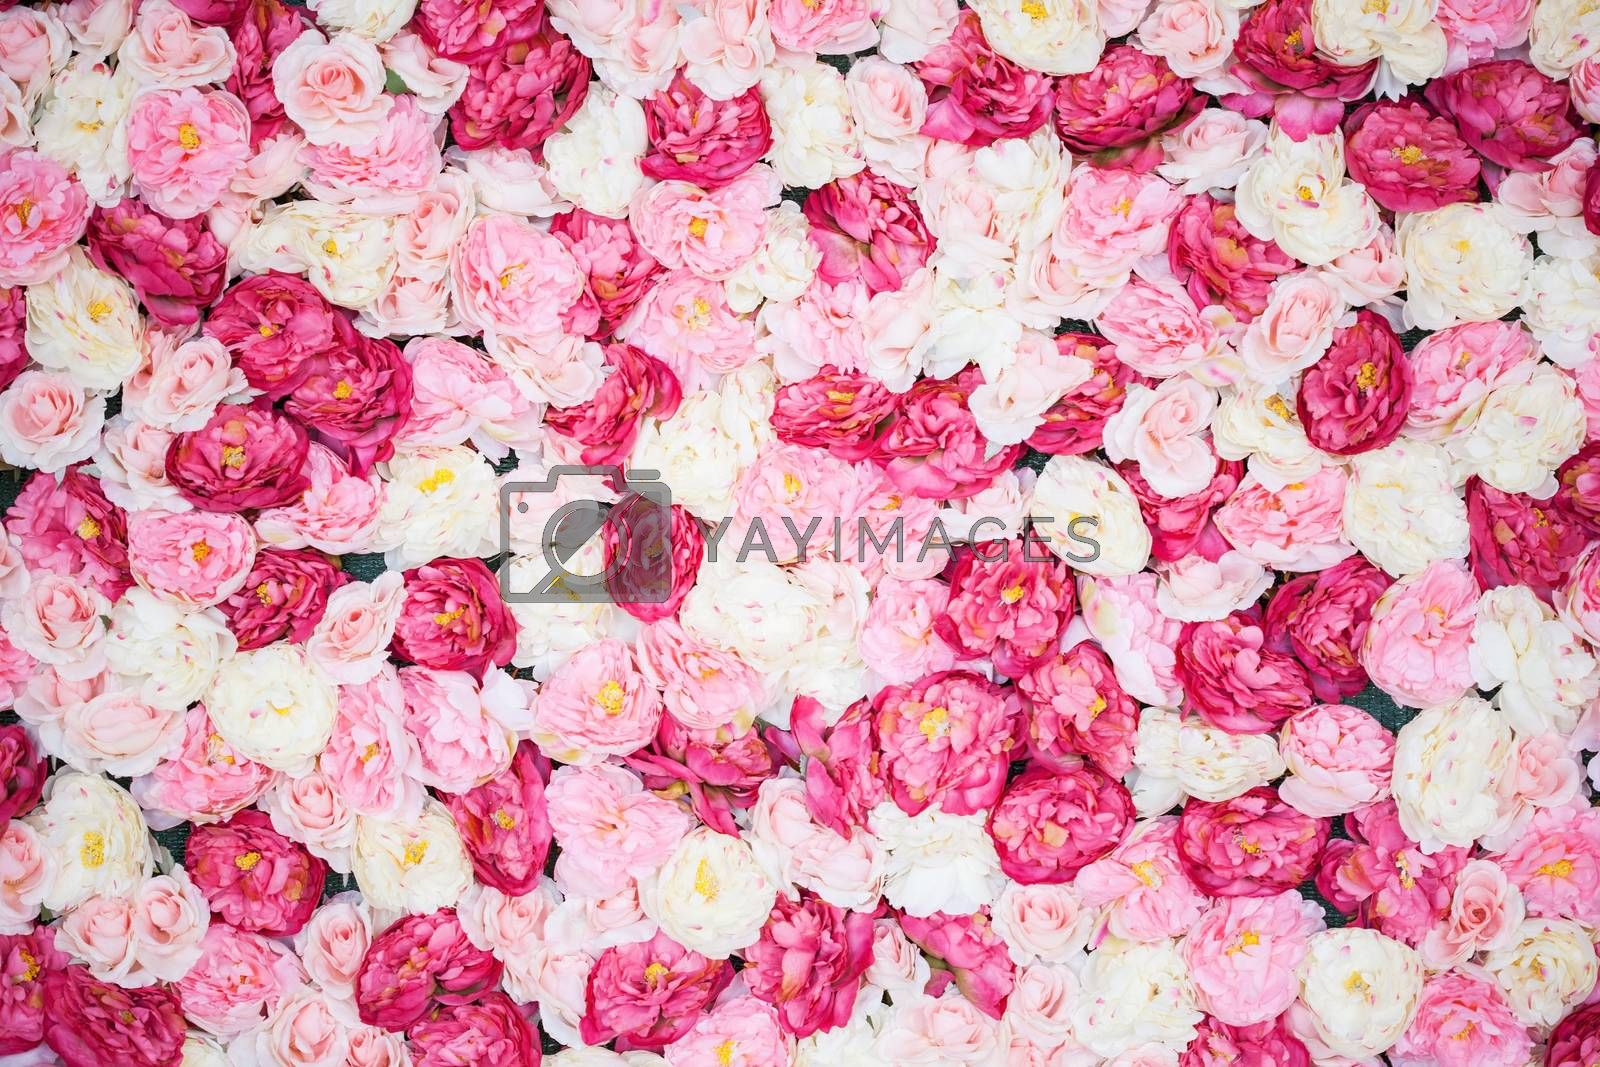 background full of white and pink peonies by dolgachov